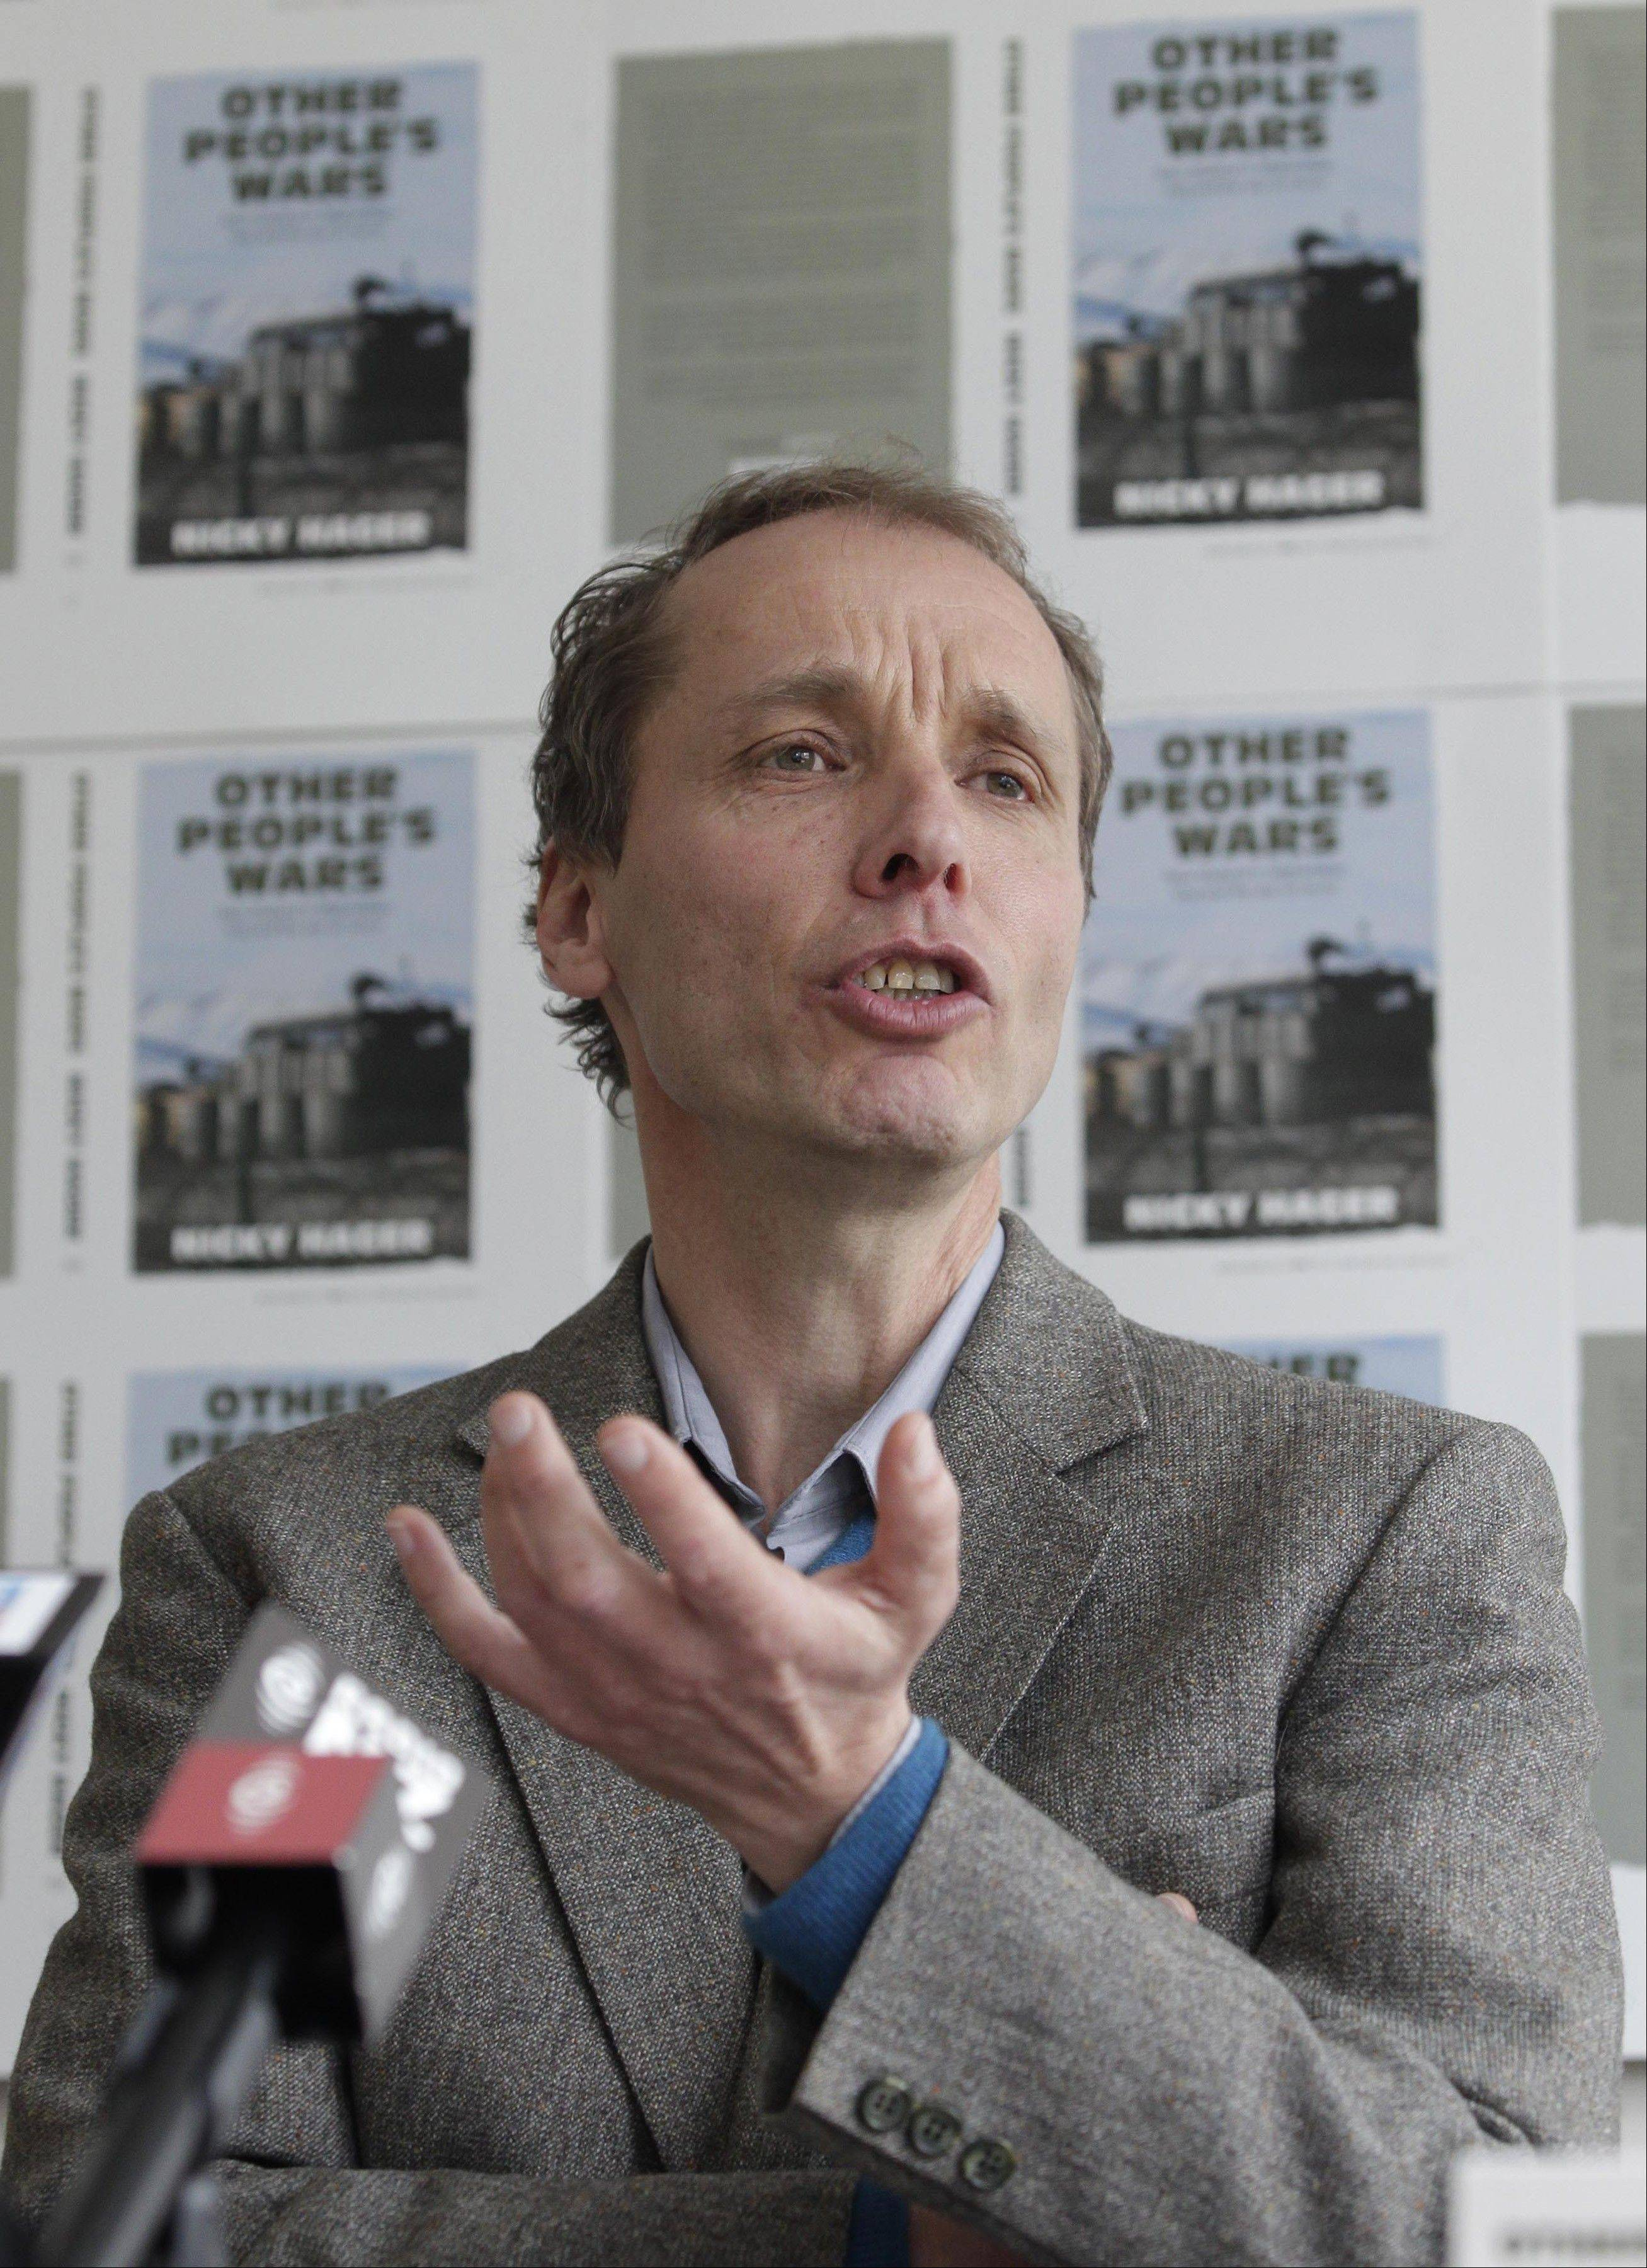 In this Sept. 1, 2011 photo, author Nicky Hager speaks during a news conference in Wellington. A report in the Sunday Star-Times newspaper said that the New Zealand military, assisted by U.S. spy agencies, collected phone metadata to monitor New Zealand's journalist Jon Stephenson. New Zealand said Monday, July 29, 2013, there is no evidence that either the U.S. or the New Zealand military spied on journalist Stephenson in Afghanistan who was freelancing for American news organization McClatchy.